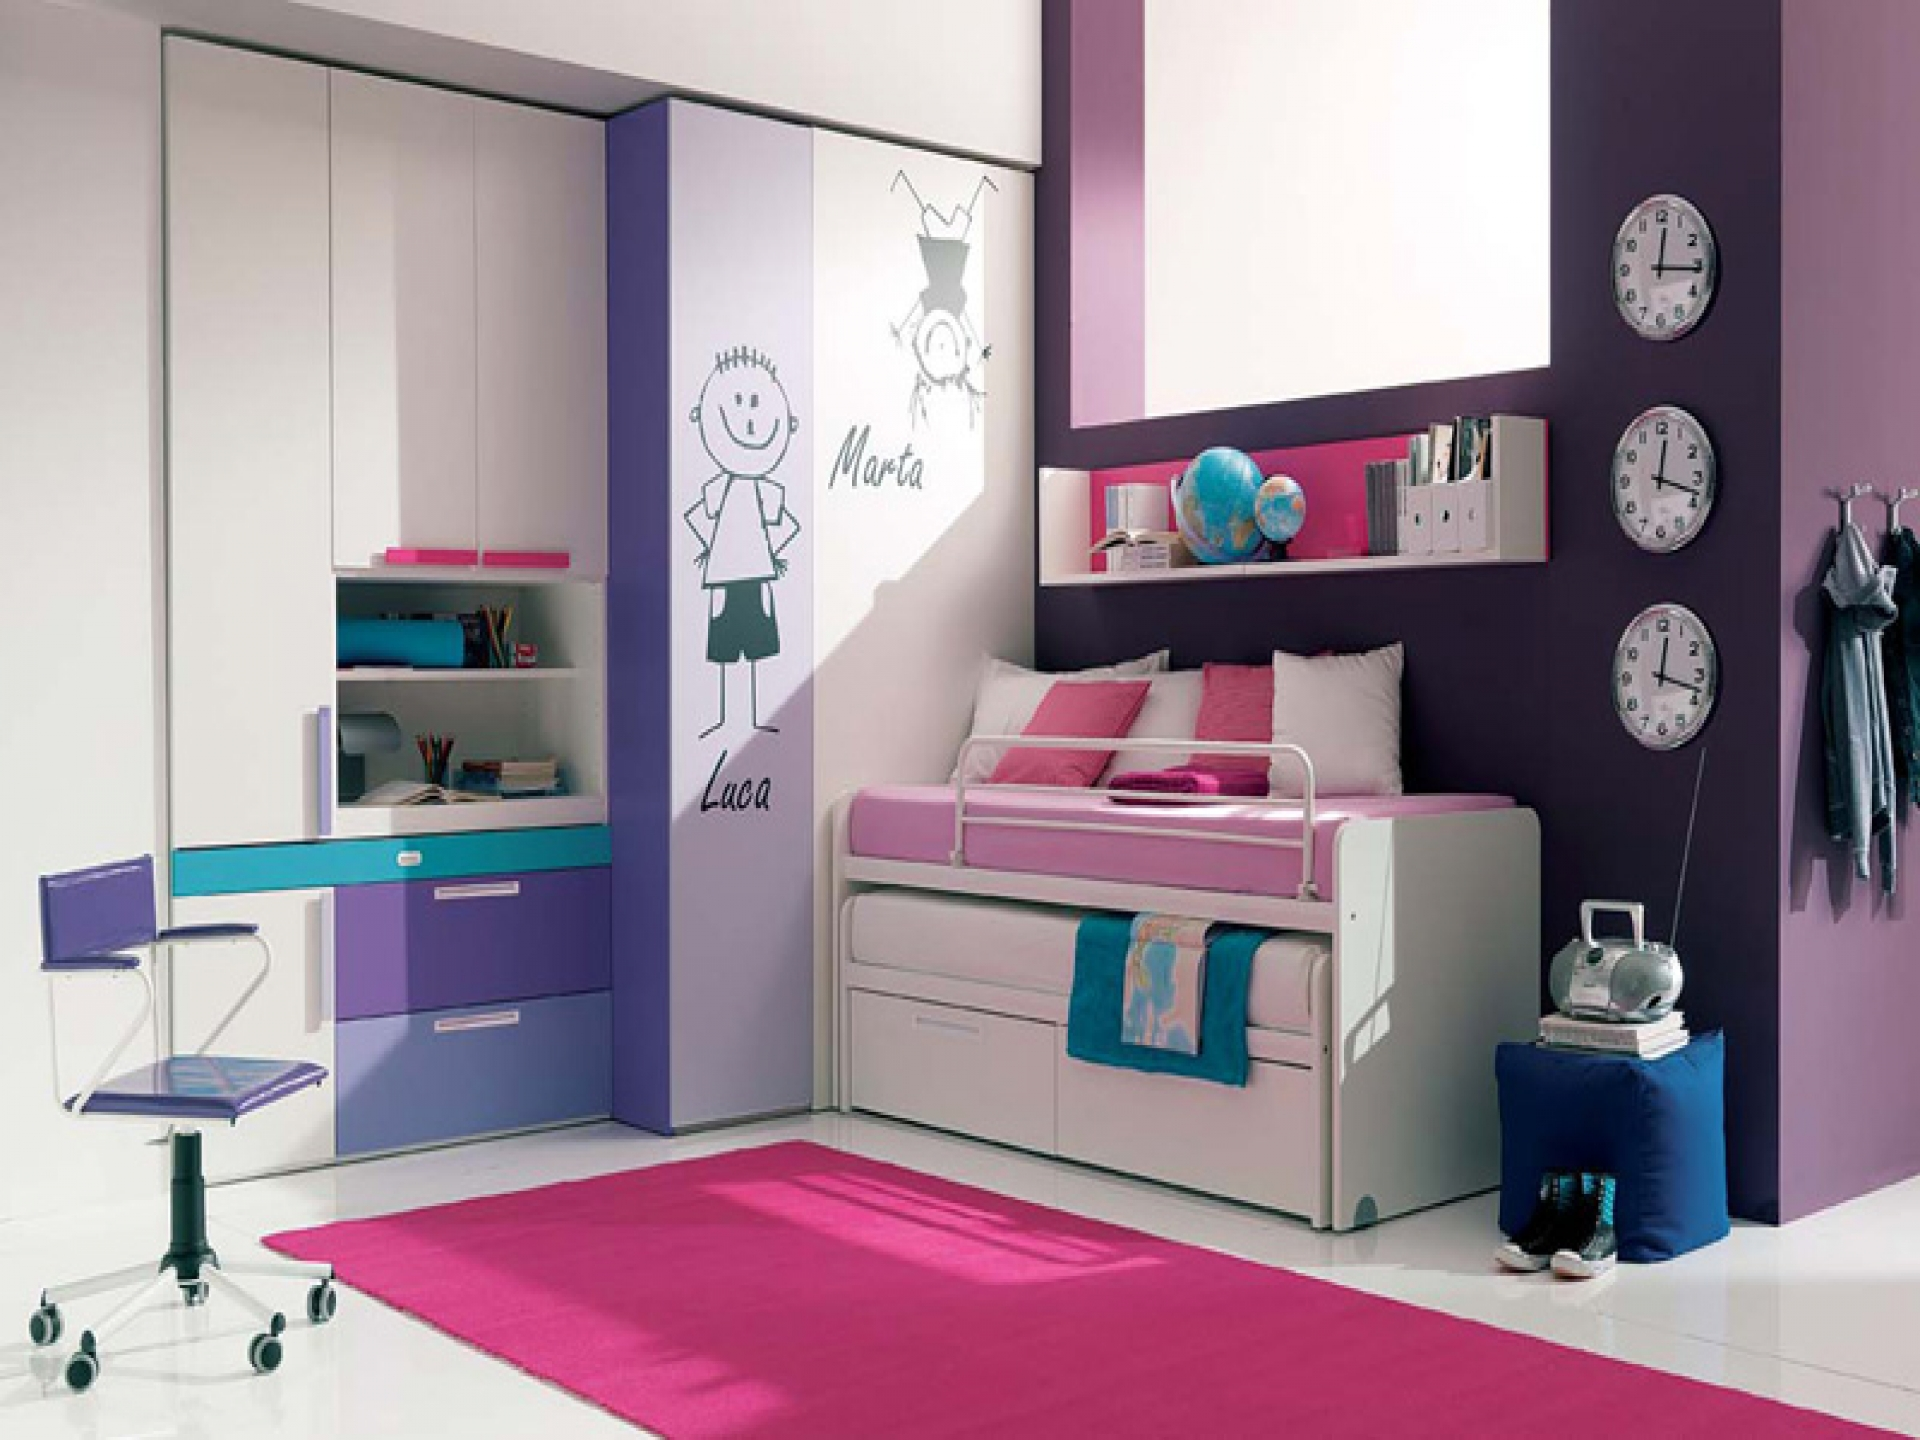 Effective Small Teen Bedroom Ideas for Two with Interesting Purple and Pink Color Scheme